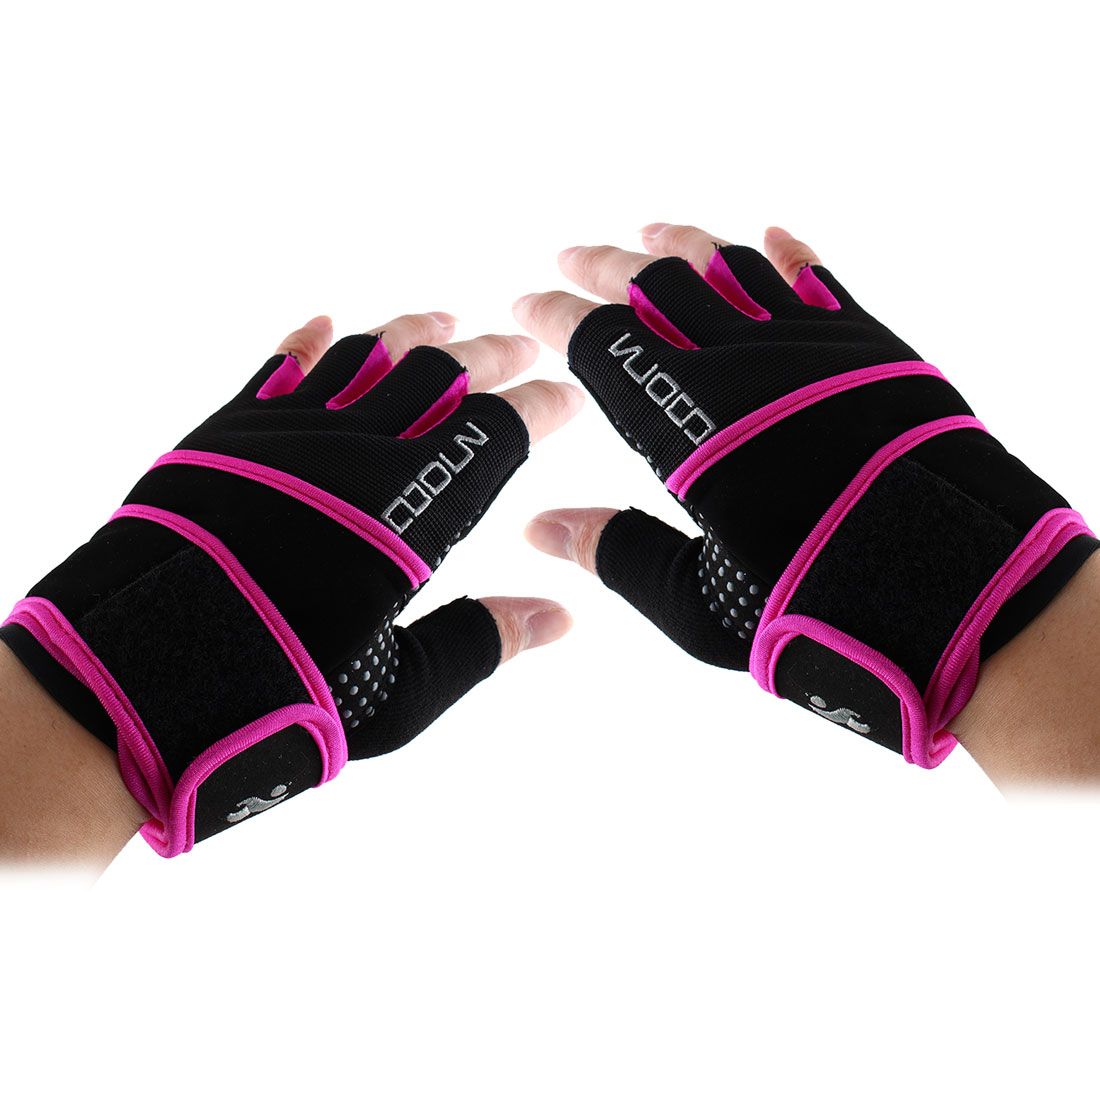 Boodun Authorized Sports Weight Lifting Training Gym Workout Fitness Embroidery Adjustable Anti Slip Half Finger Gloves Purple Size L Pair